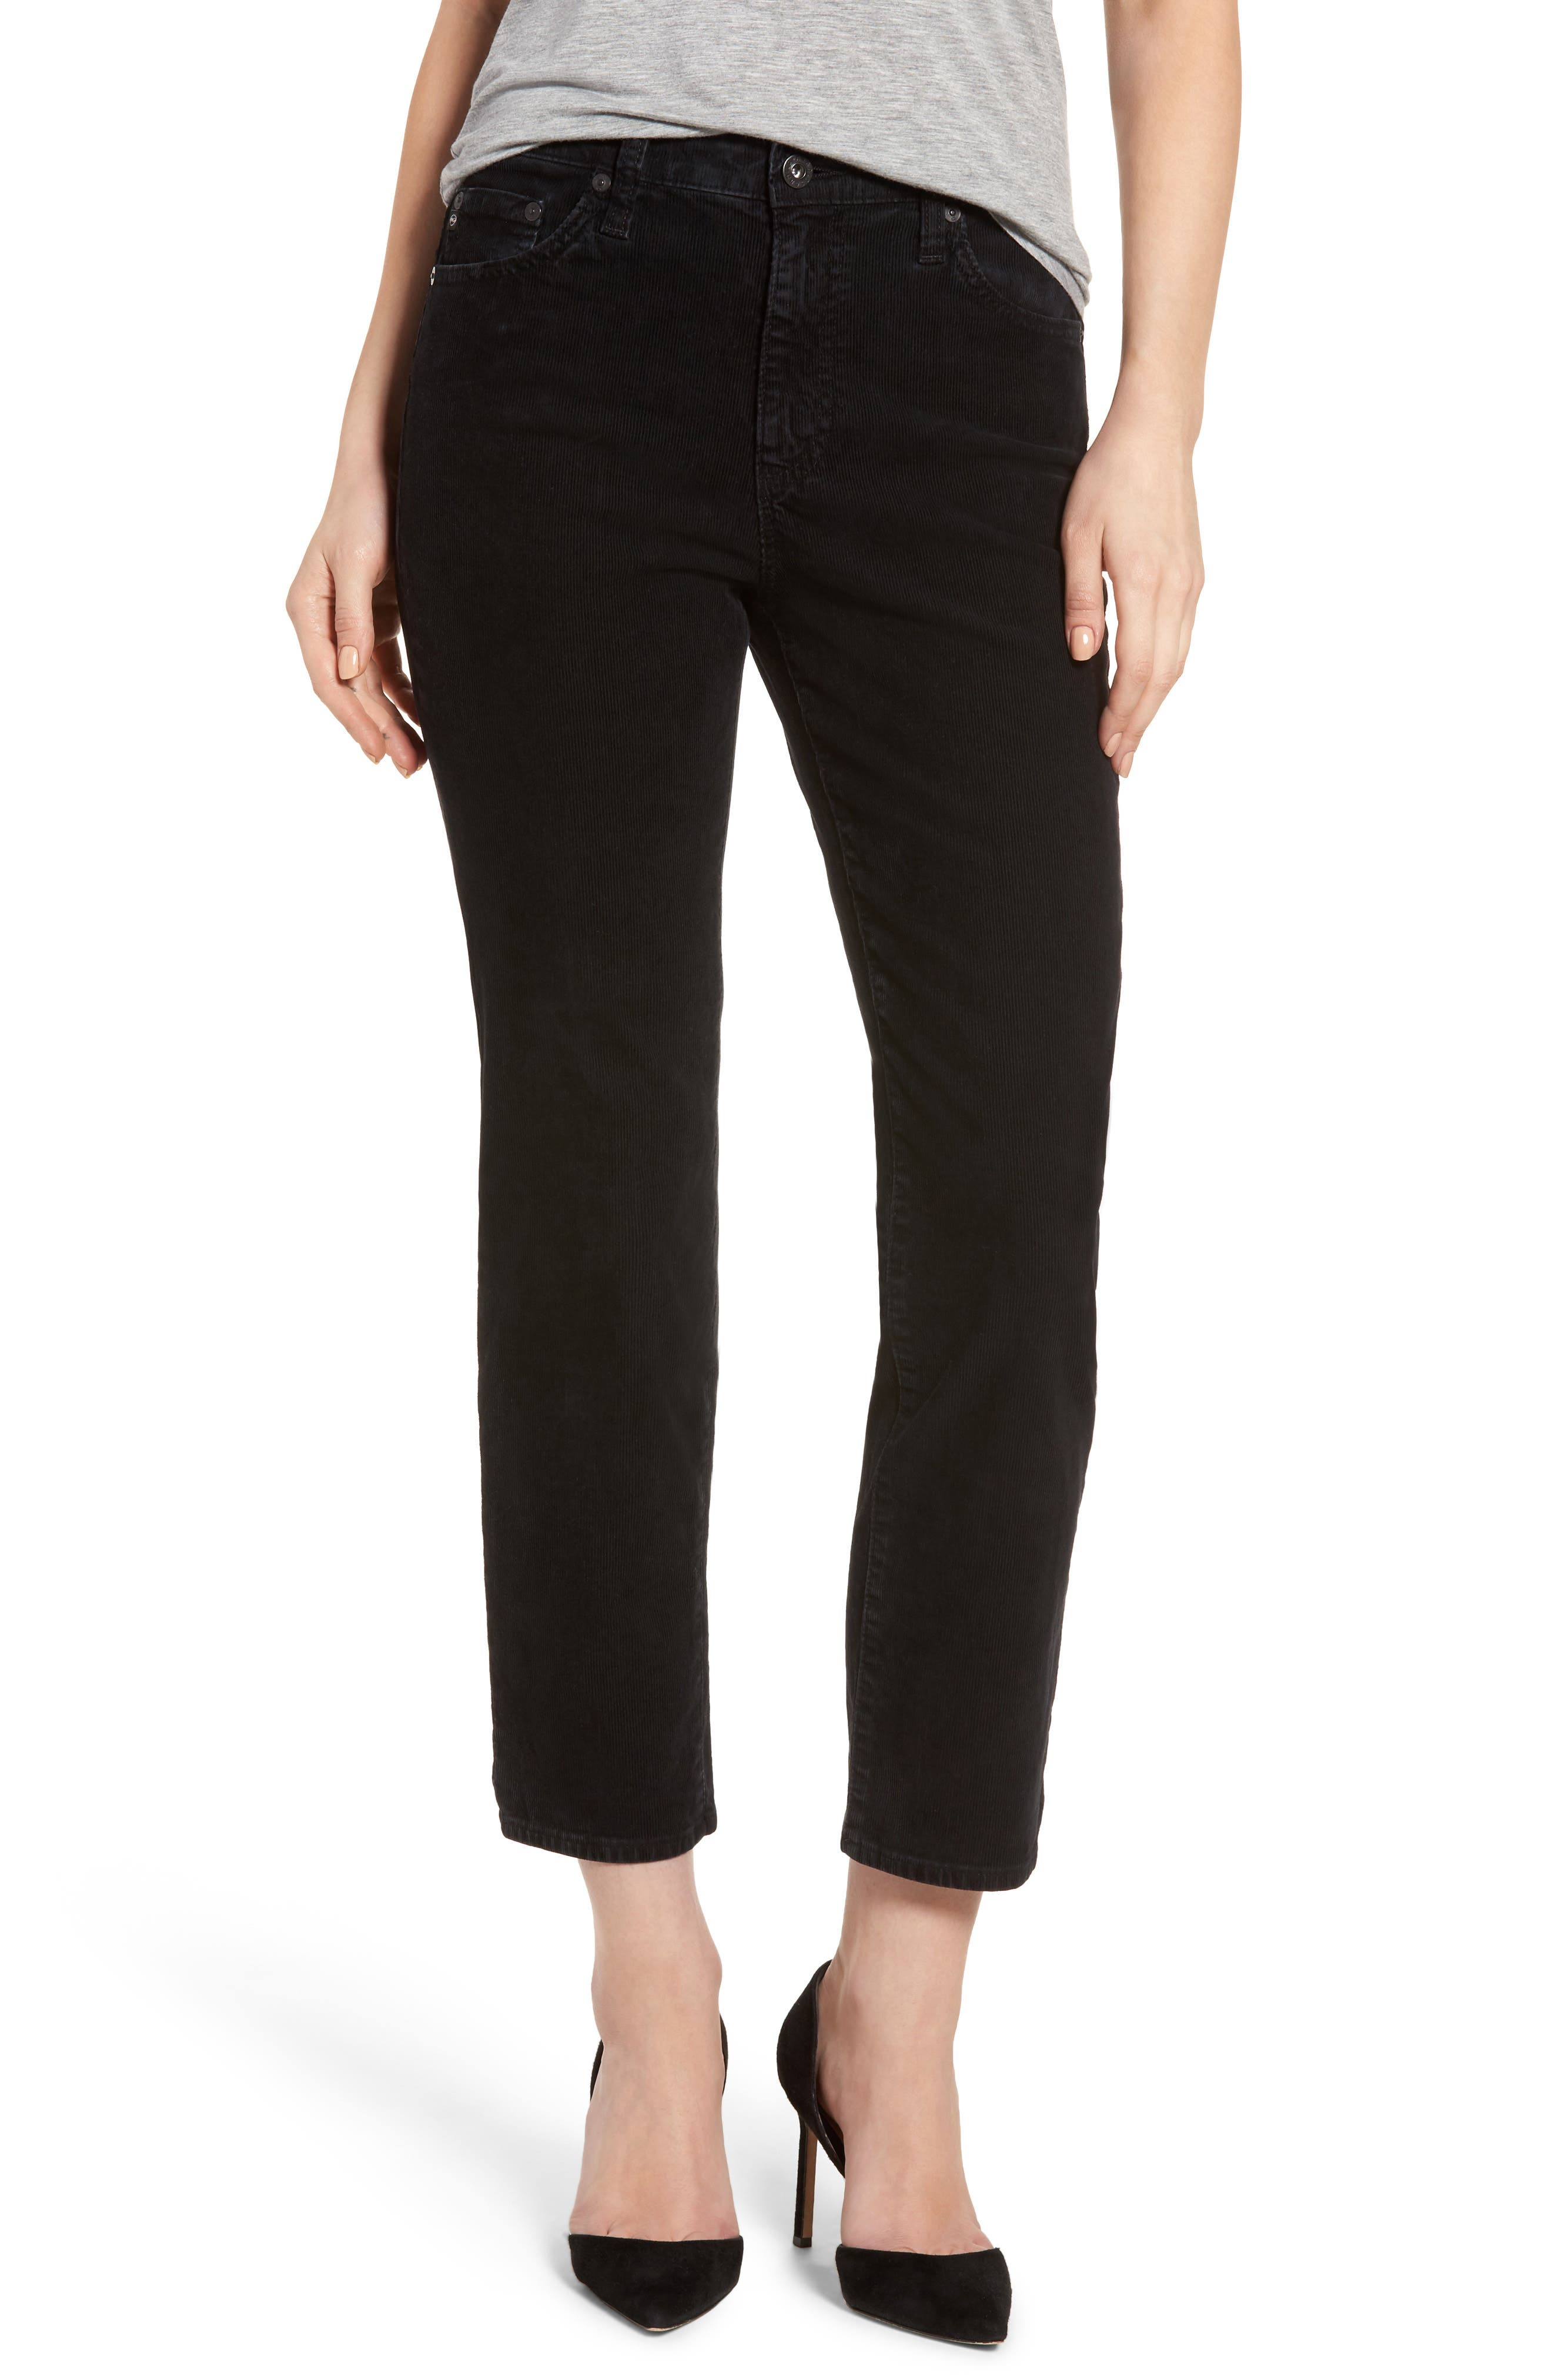 Alternate Image 1 Selected - AG Isabelle High Waist Corduroy Jeans